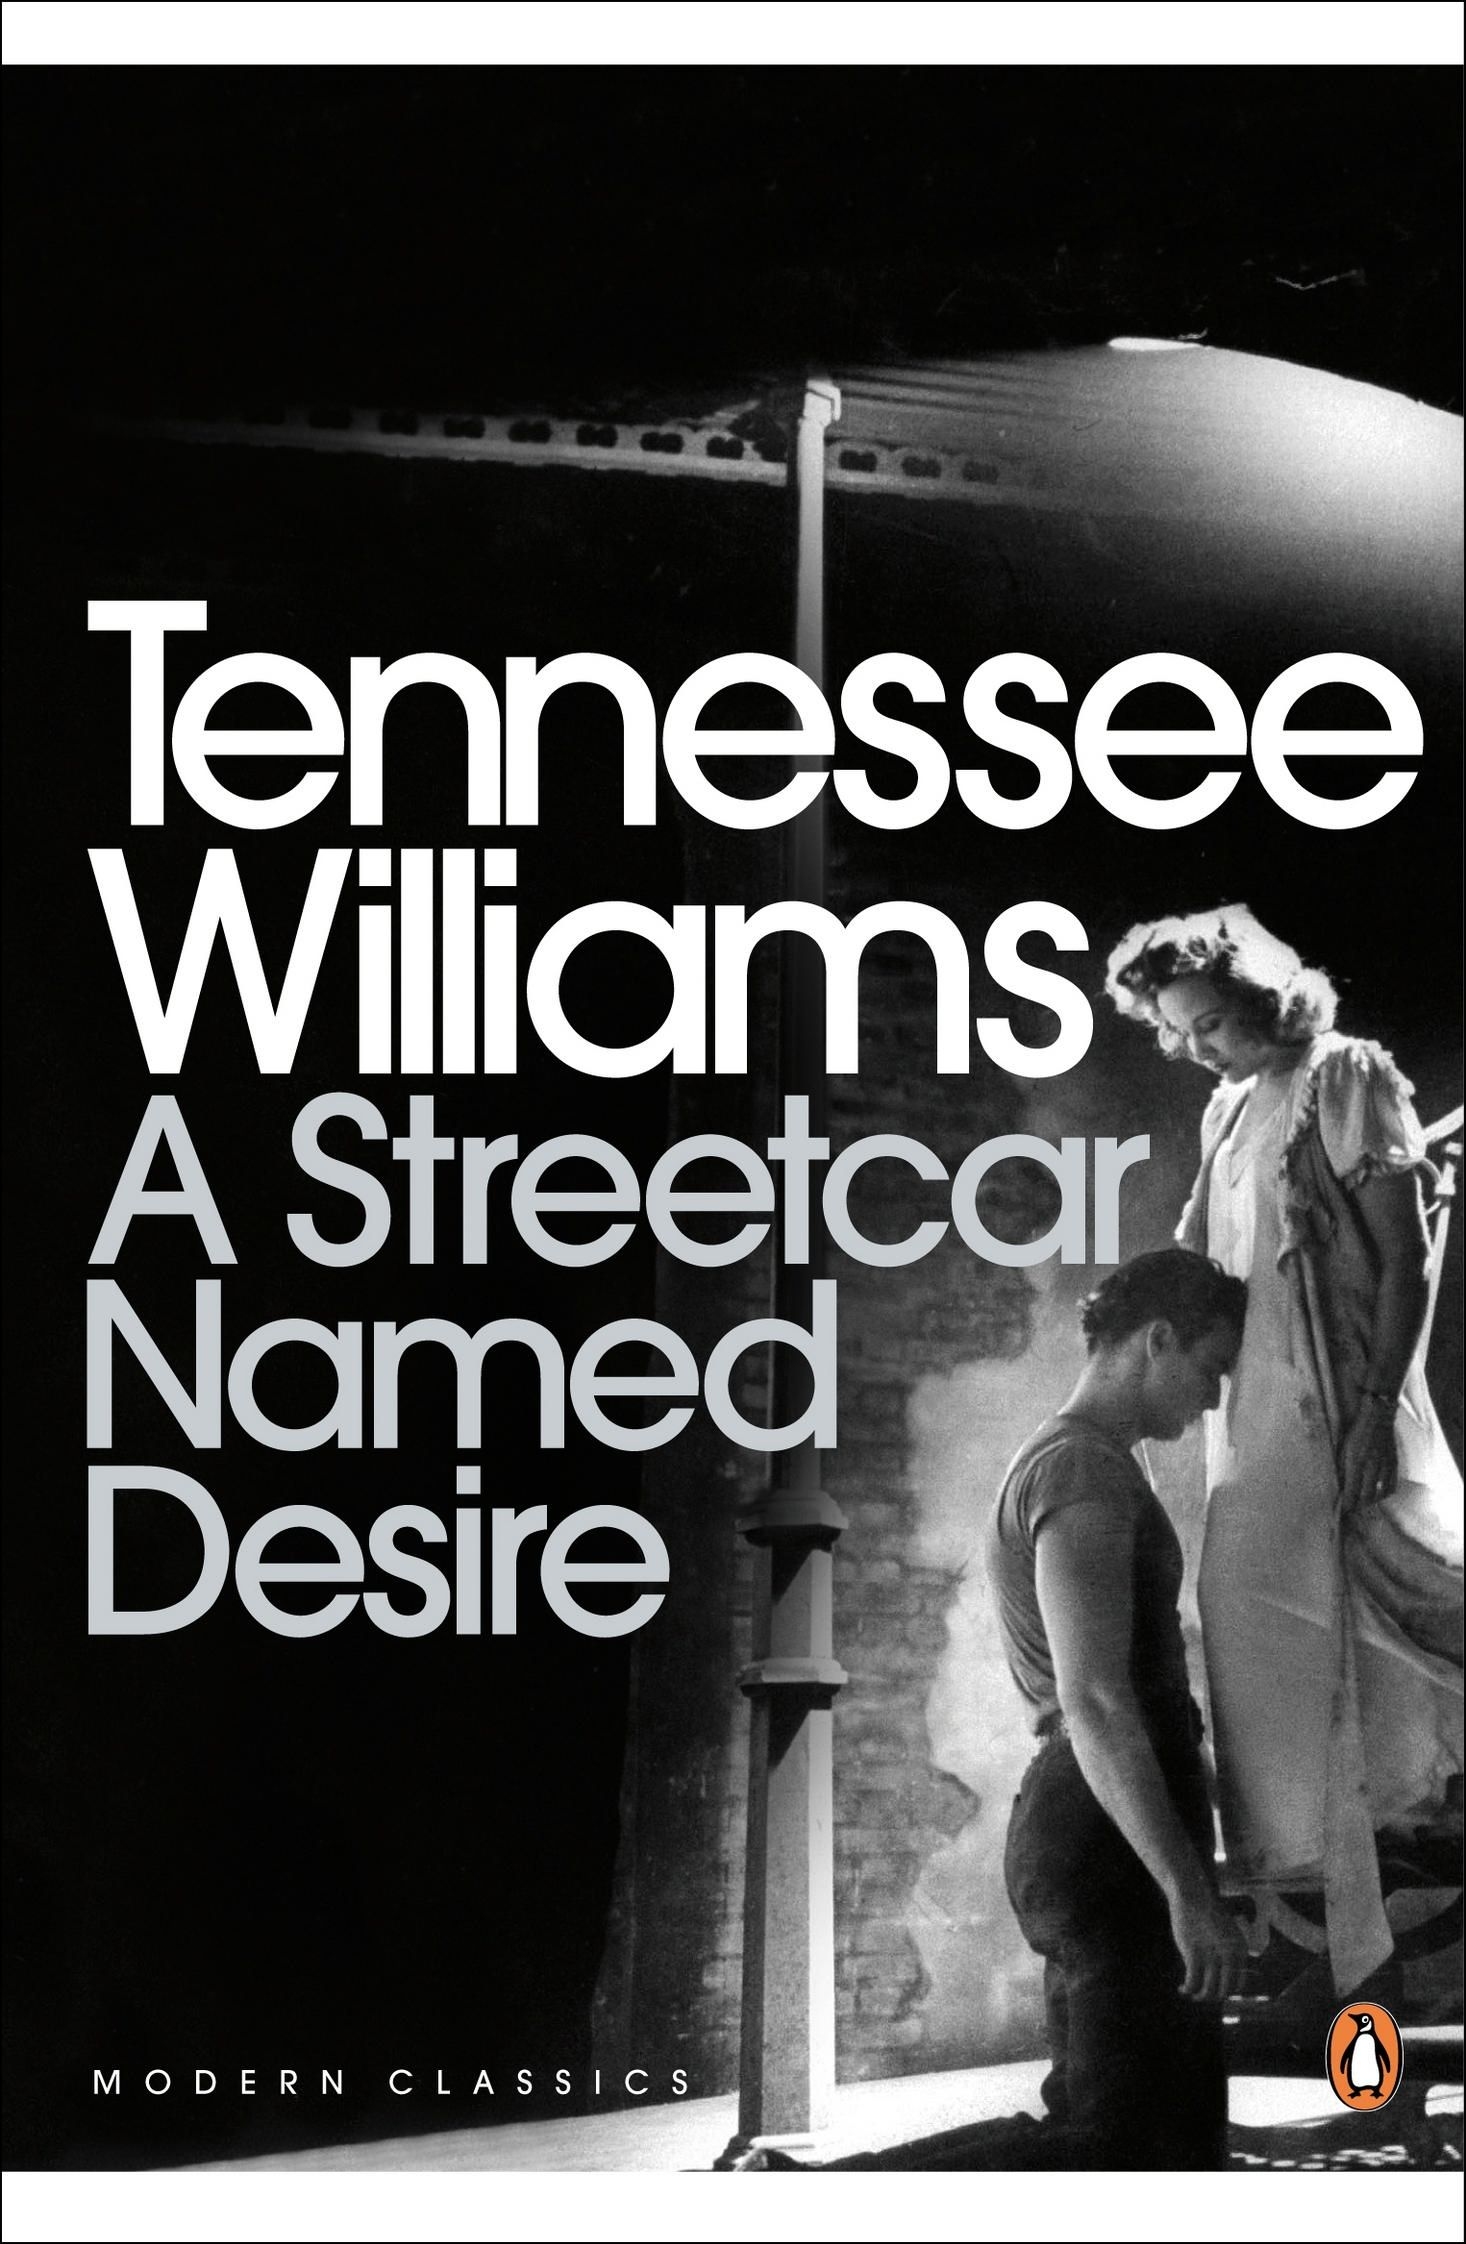 gift ideas drama modern classic swift and tennessee williams from blanche dubois flight from reality to stella s reluctant choices and stanley s domineering facet a streetcar d desire is one of the best drama i